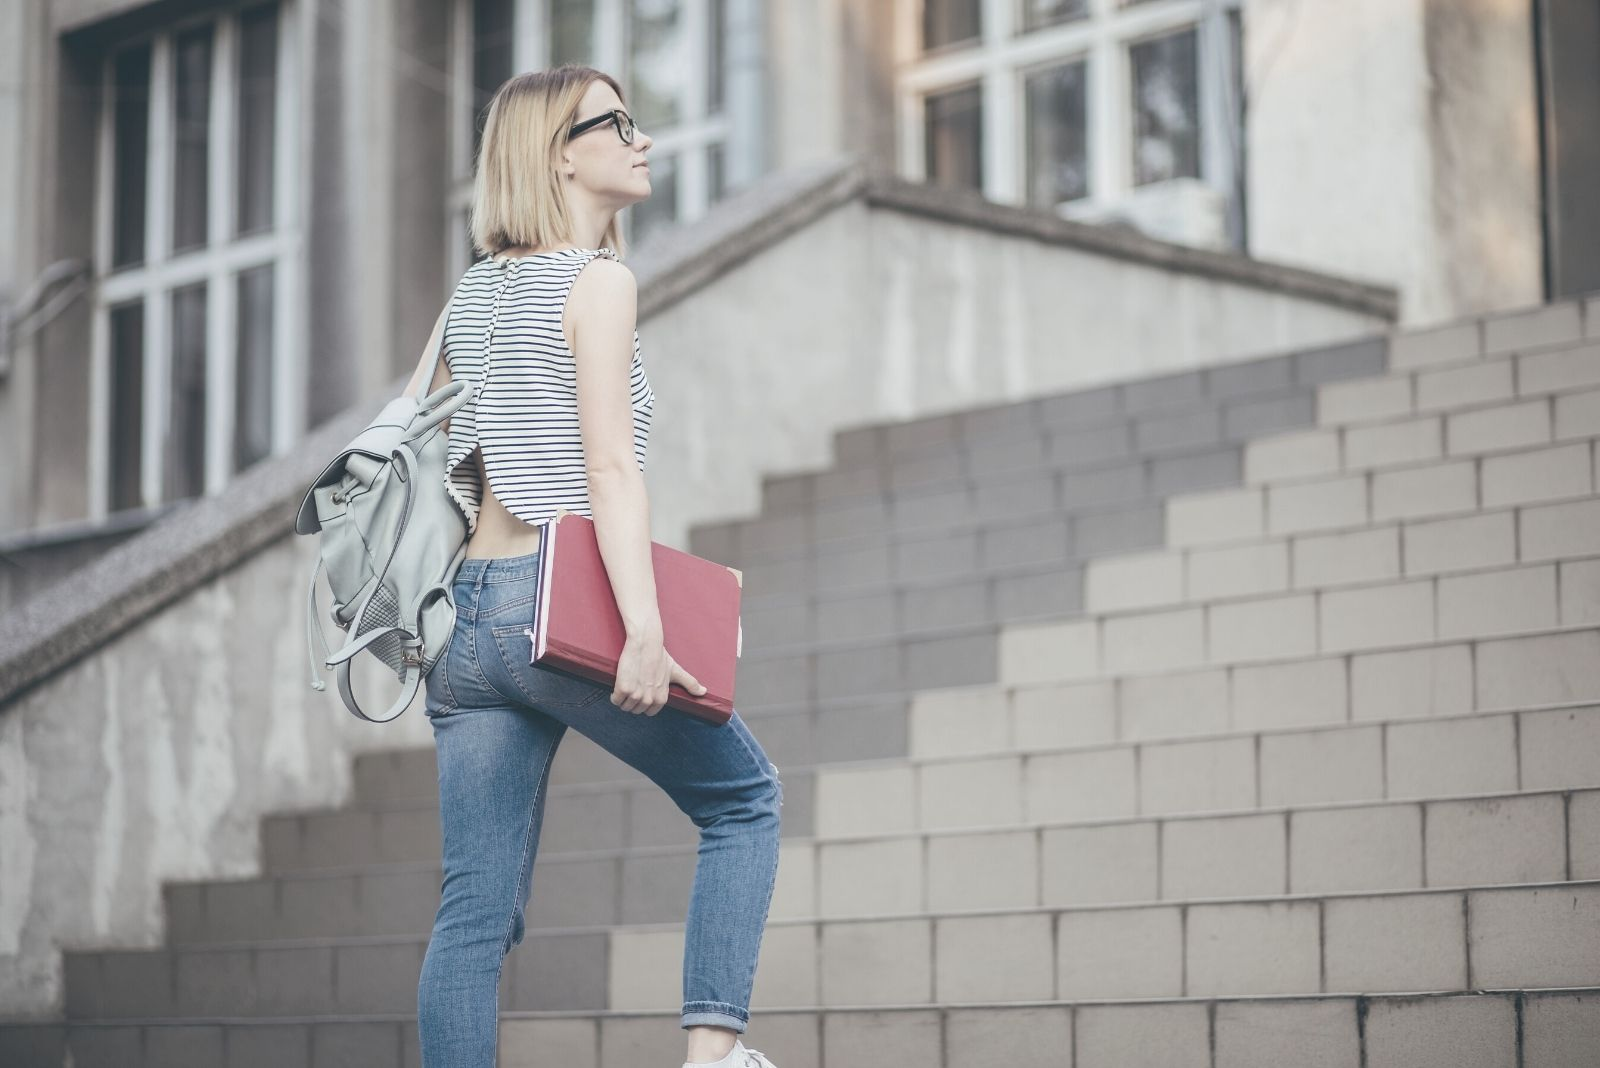 woman student climbing the stairs carrying books and looking hopeful